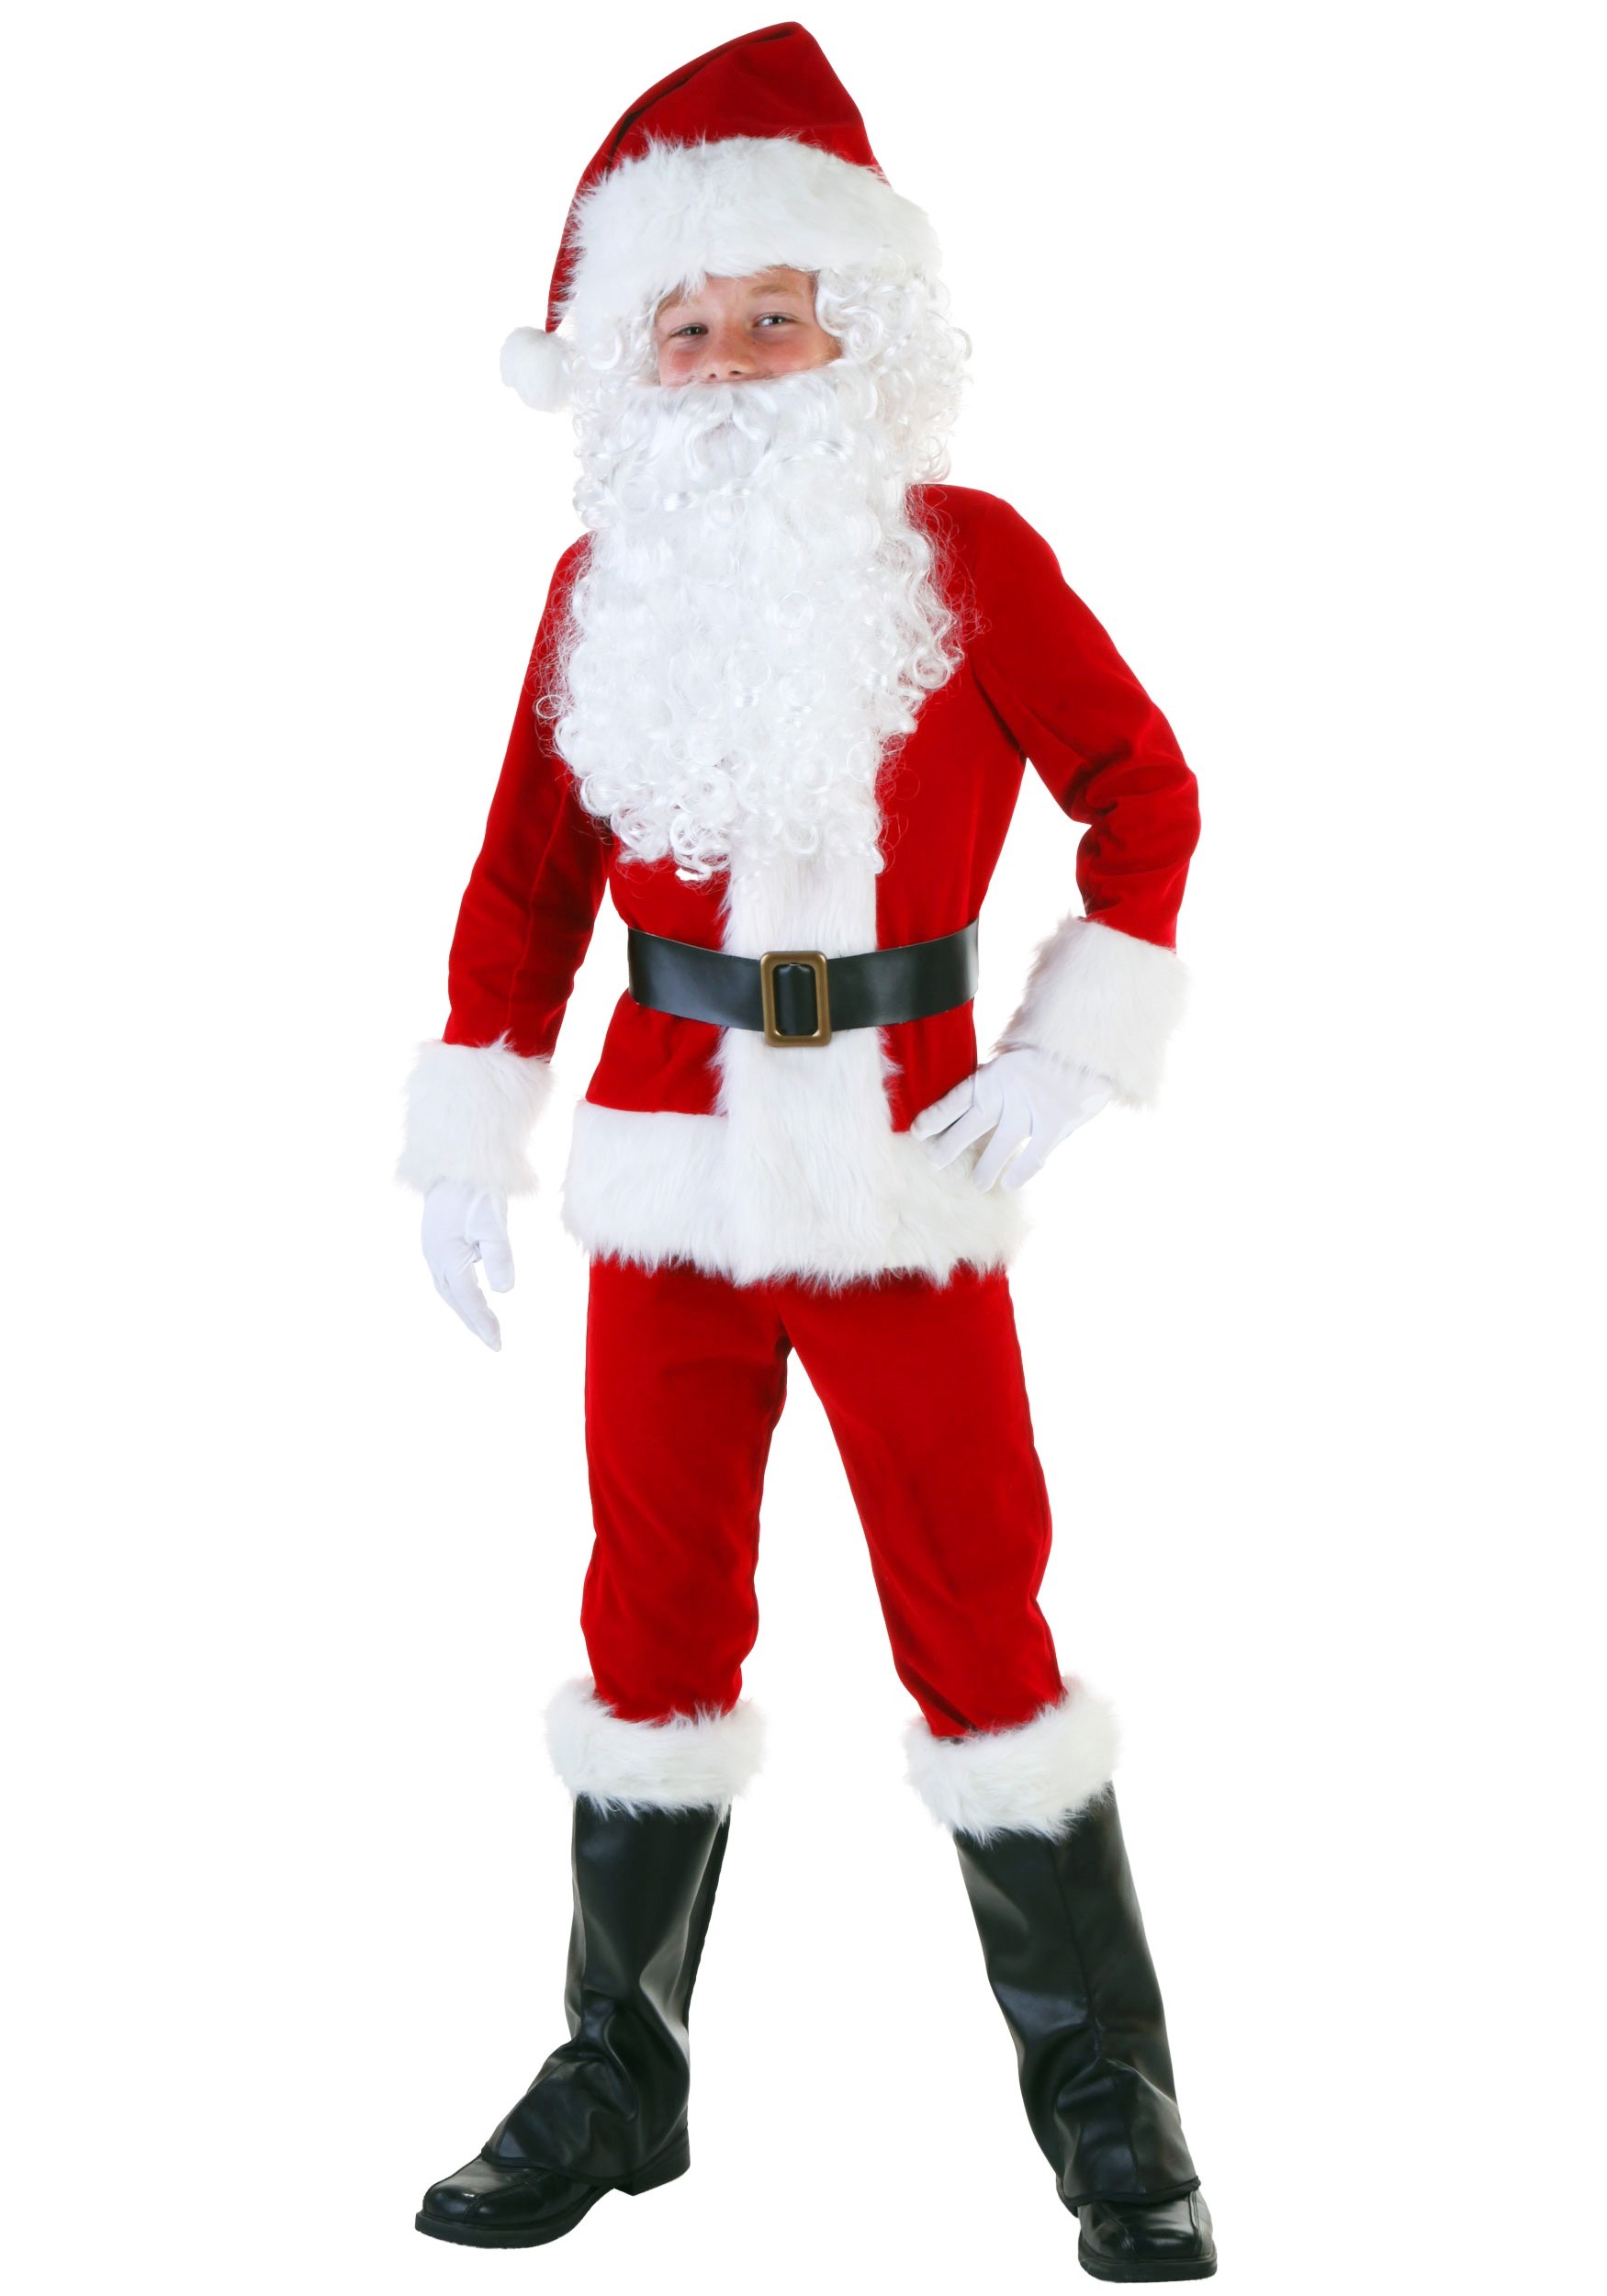 The Boys Plush Santa Suit is the perfect Halloween costume for you. Show off your Boys costume and impress your friends with this top quality selection from Costume SuperCenter!